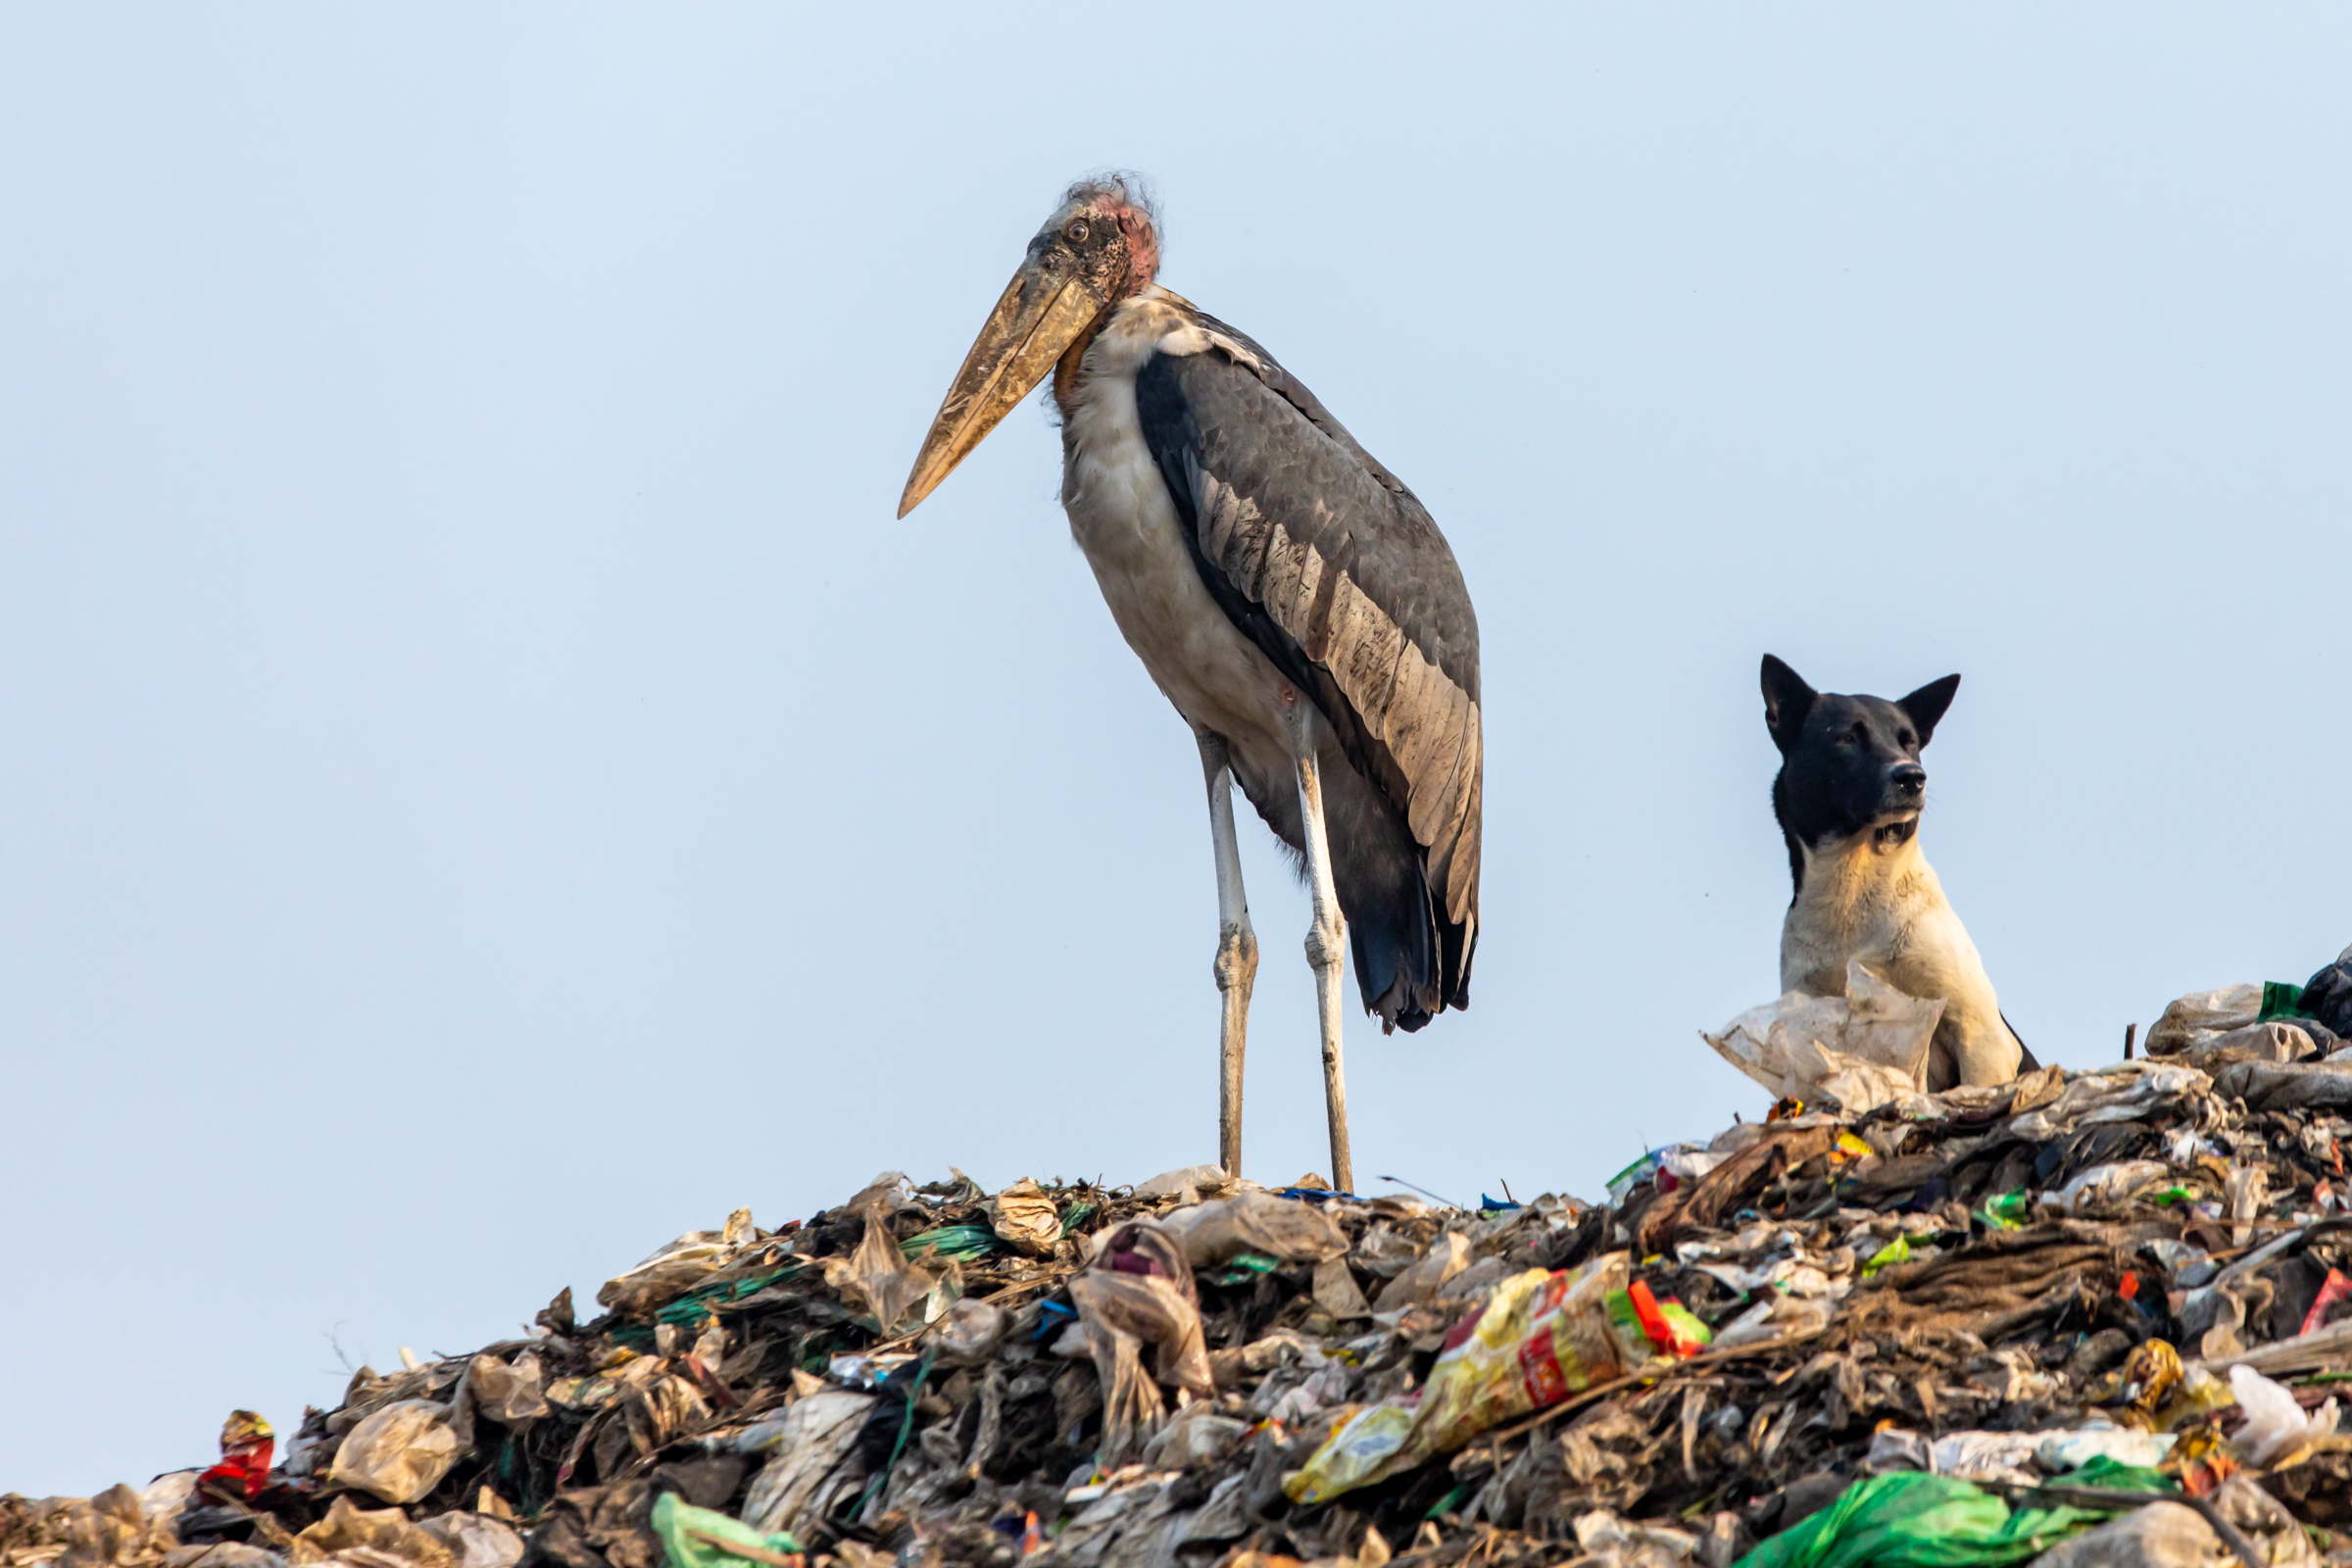 An endangered greater adjutant is seen here next t0 a stray dog in the Boragaon landfill located in Guwahati, Assam India.